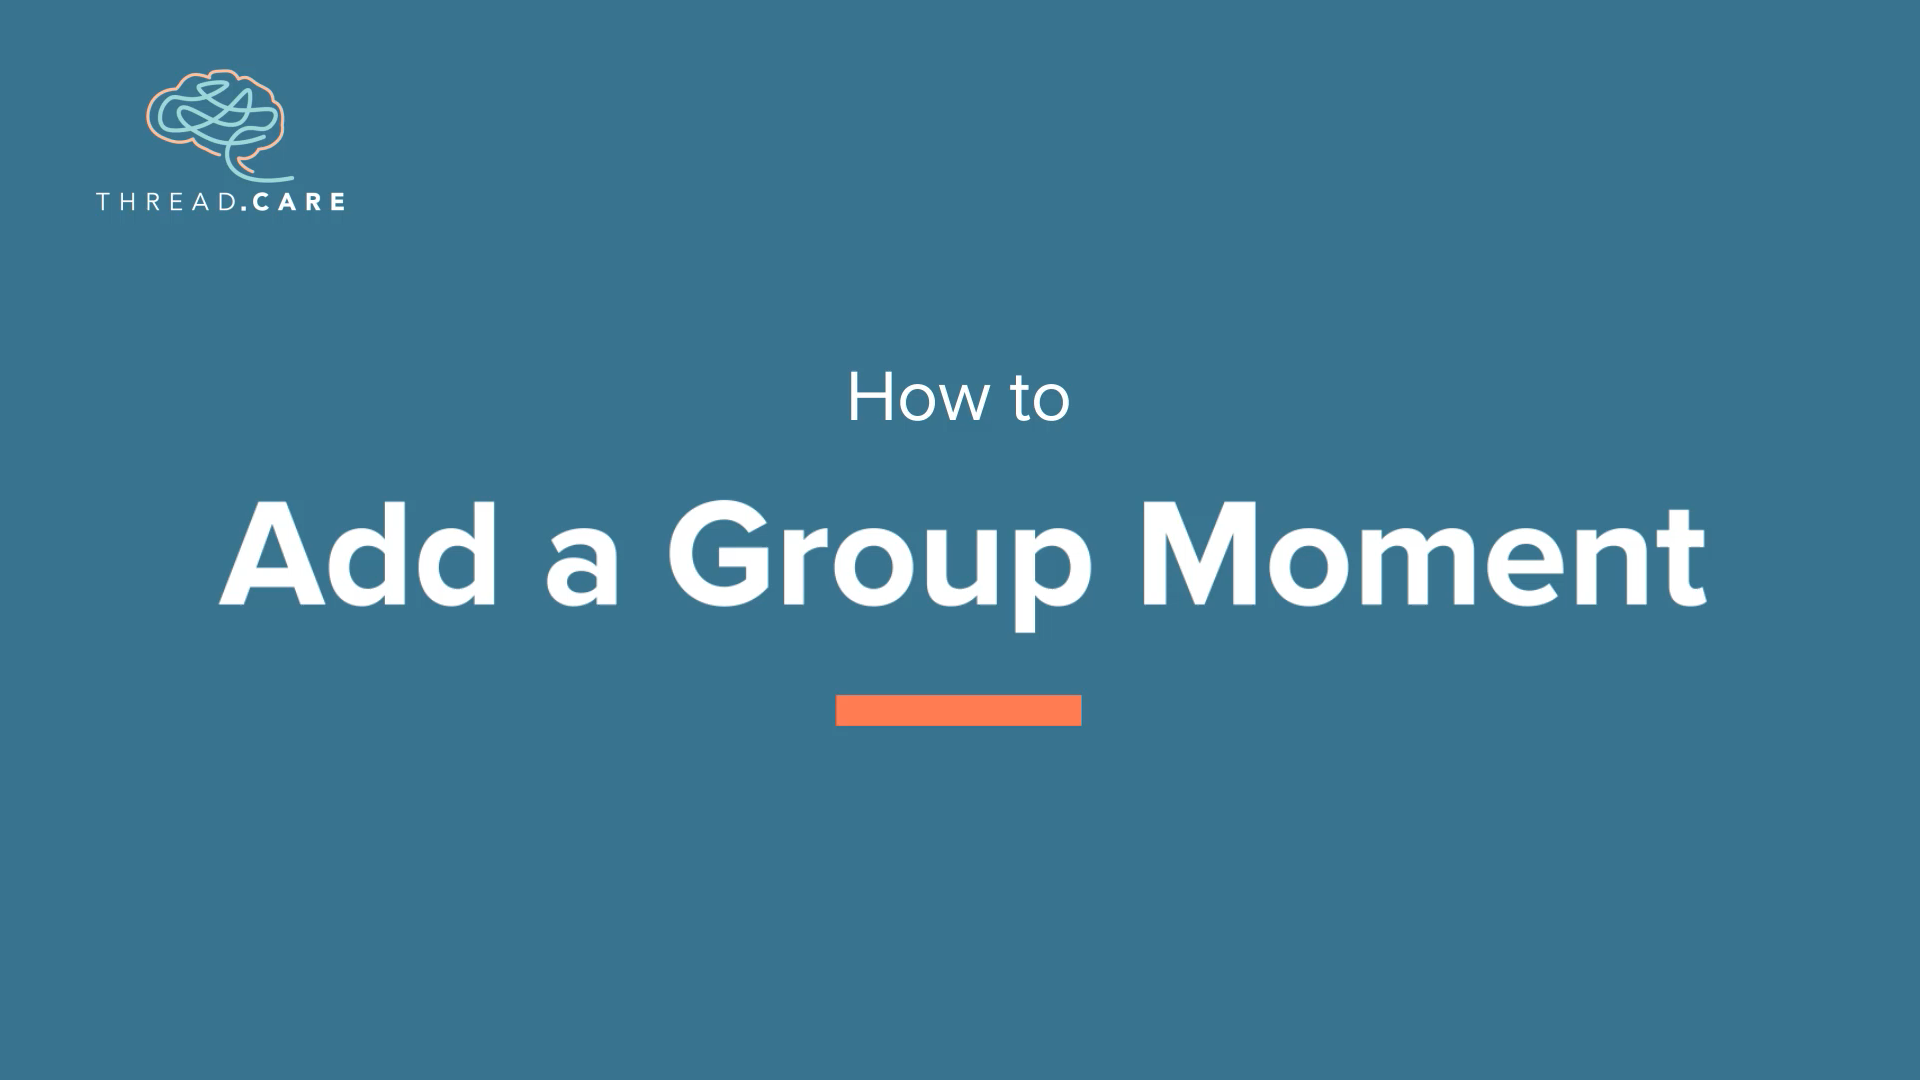 Add a Group Moment